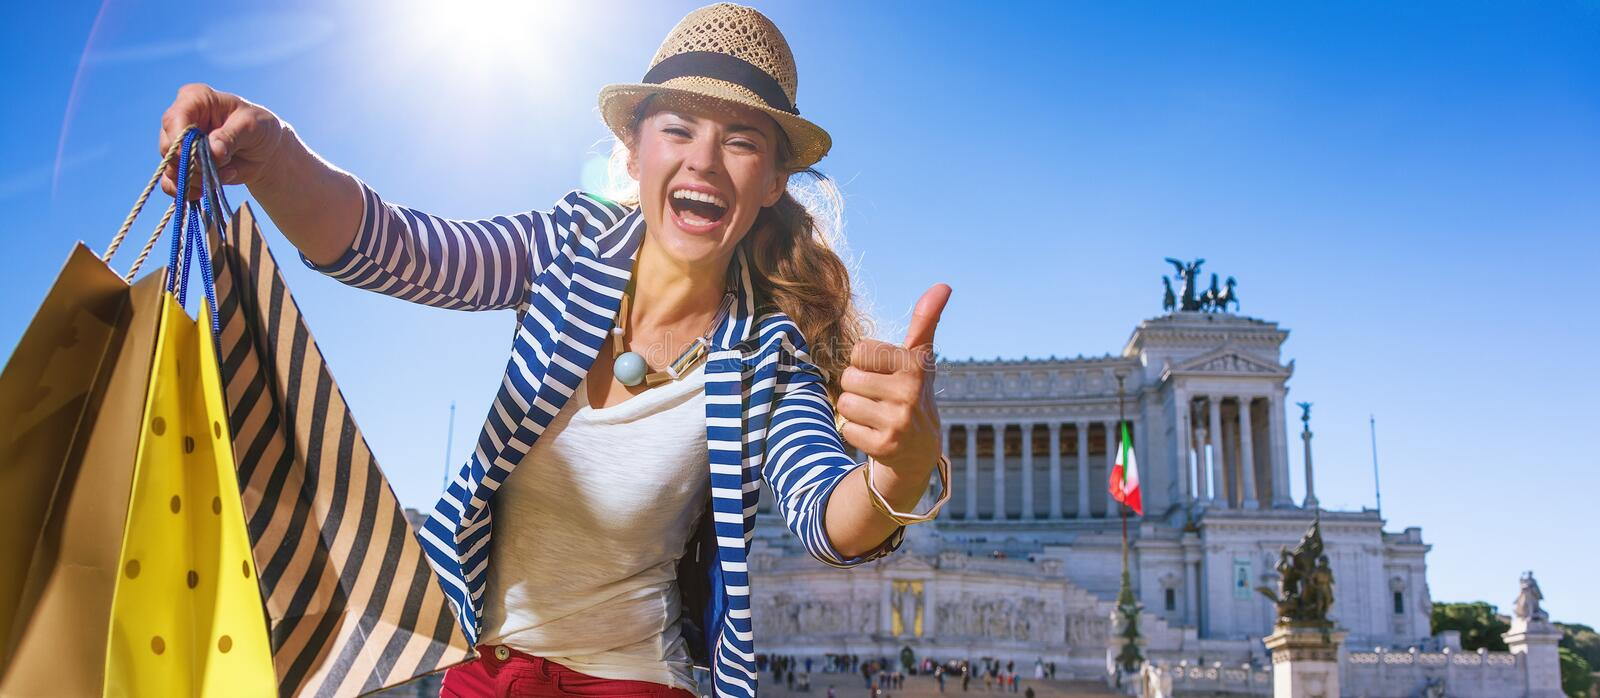 Tourist woman with shopping bags in Rome showing thumbs up stock image